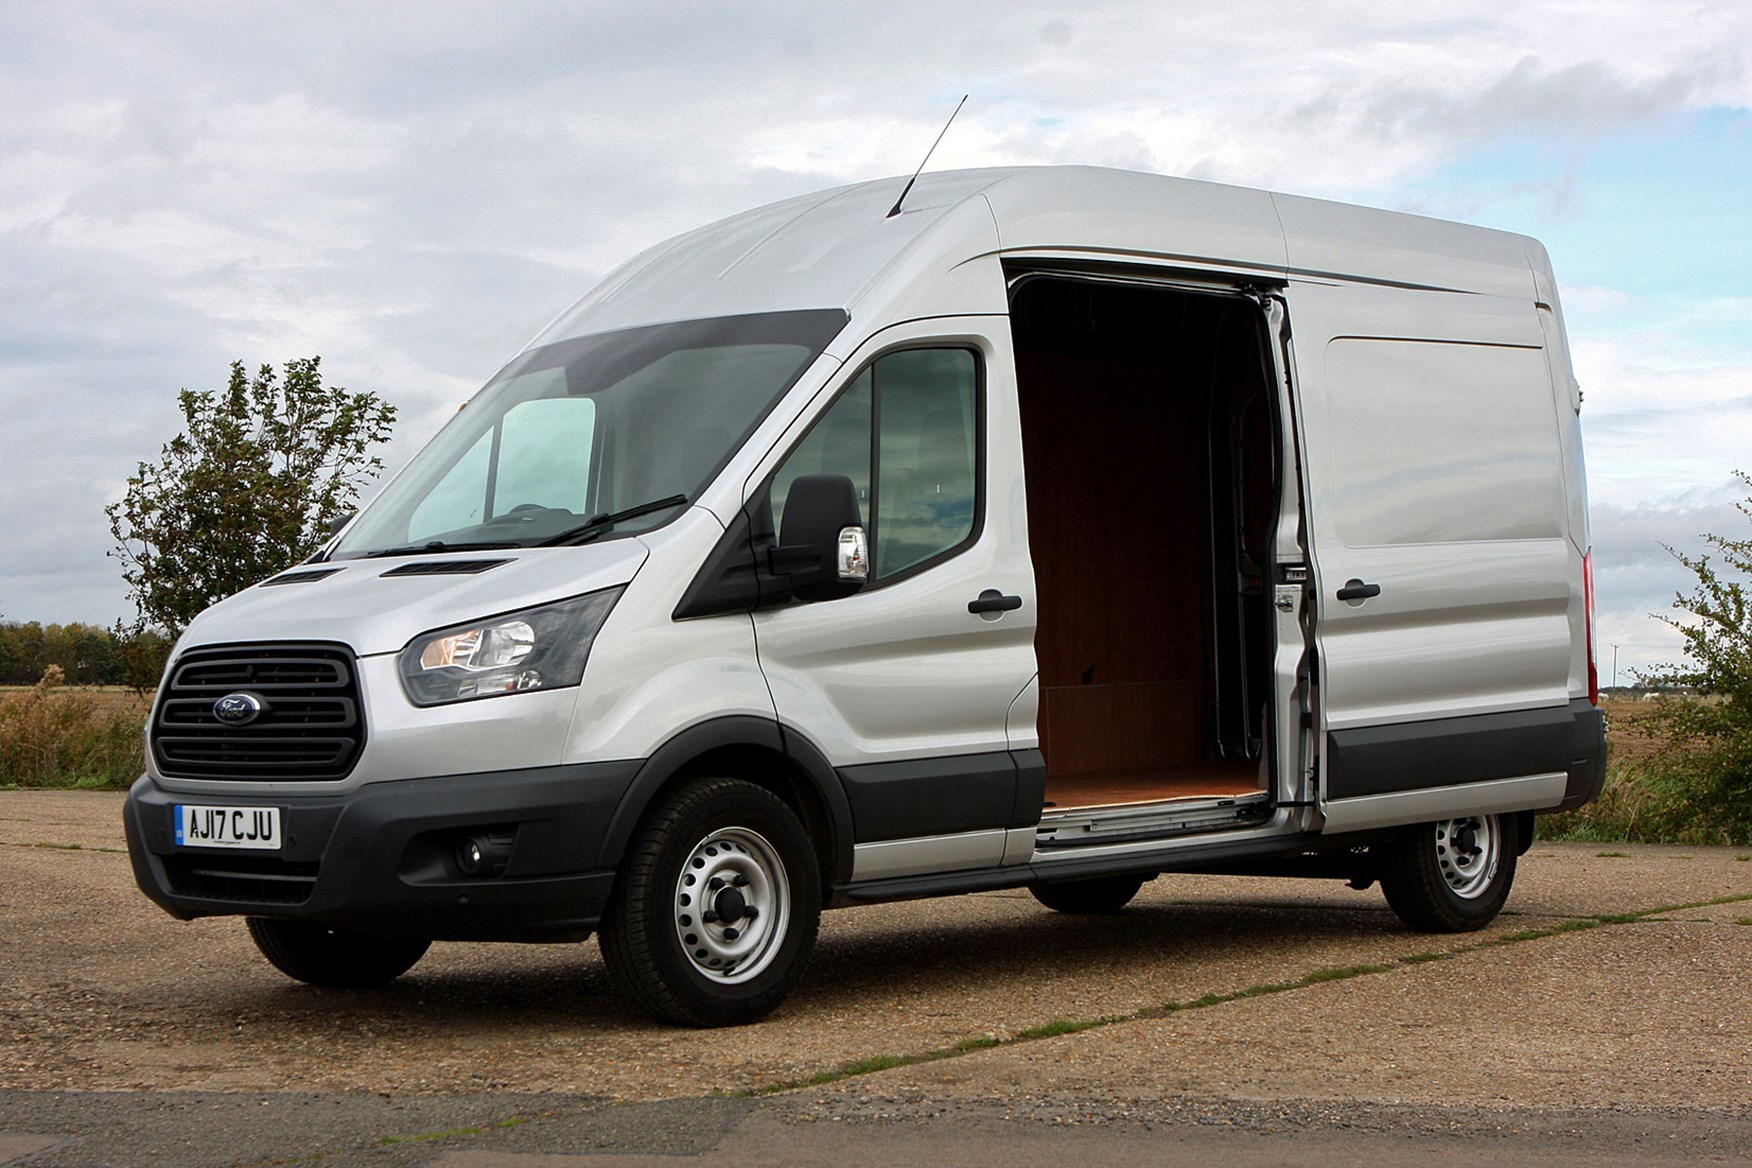 Ford Transit Van Review 2014 On Parkers Mark 6 Fuse Box Six Speed Automatic Side Door Open